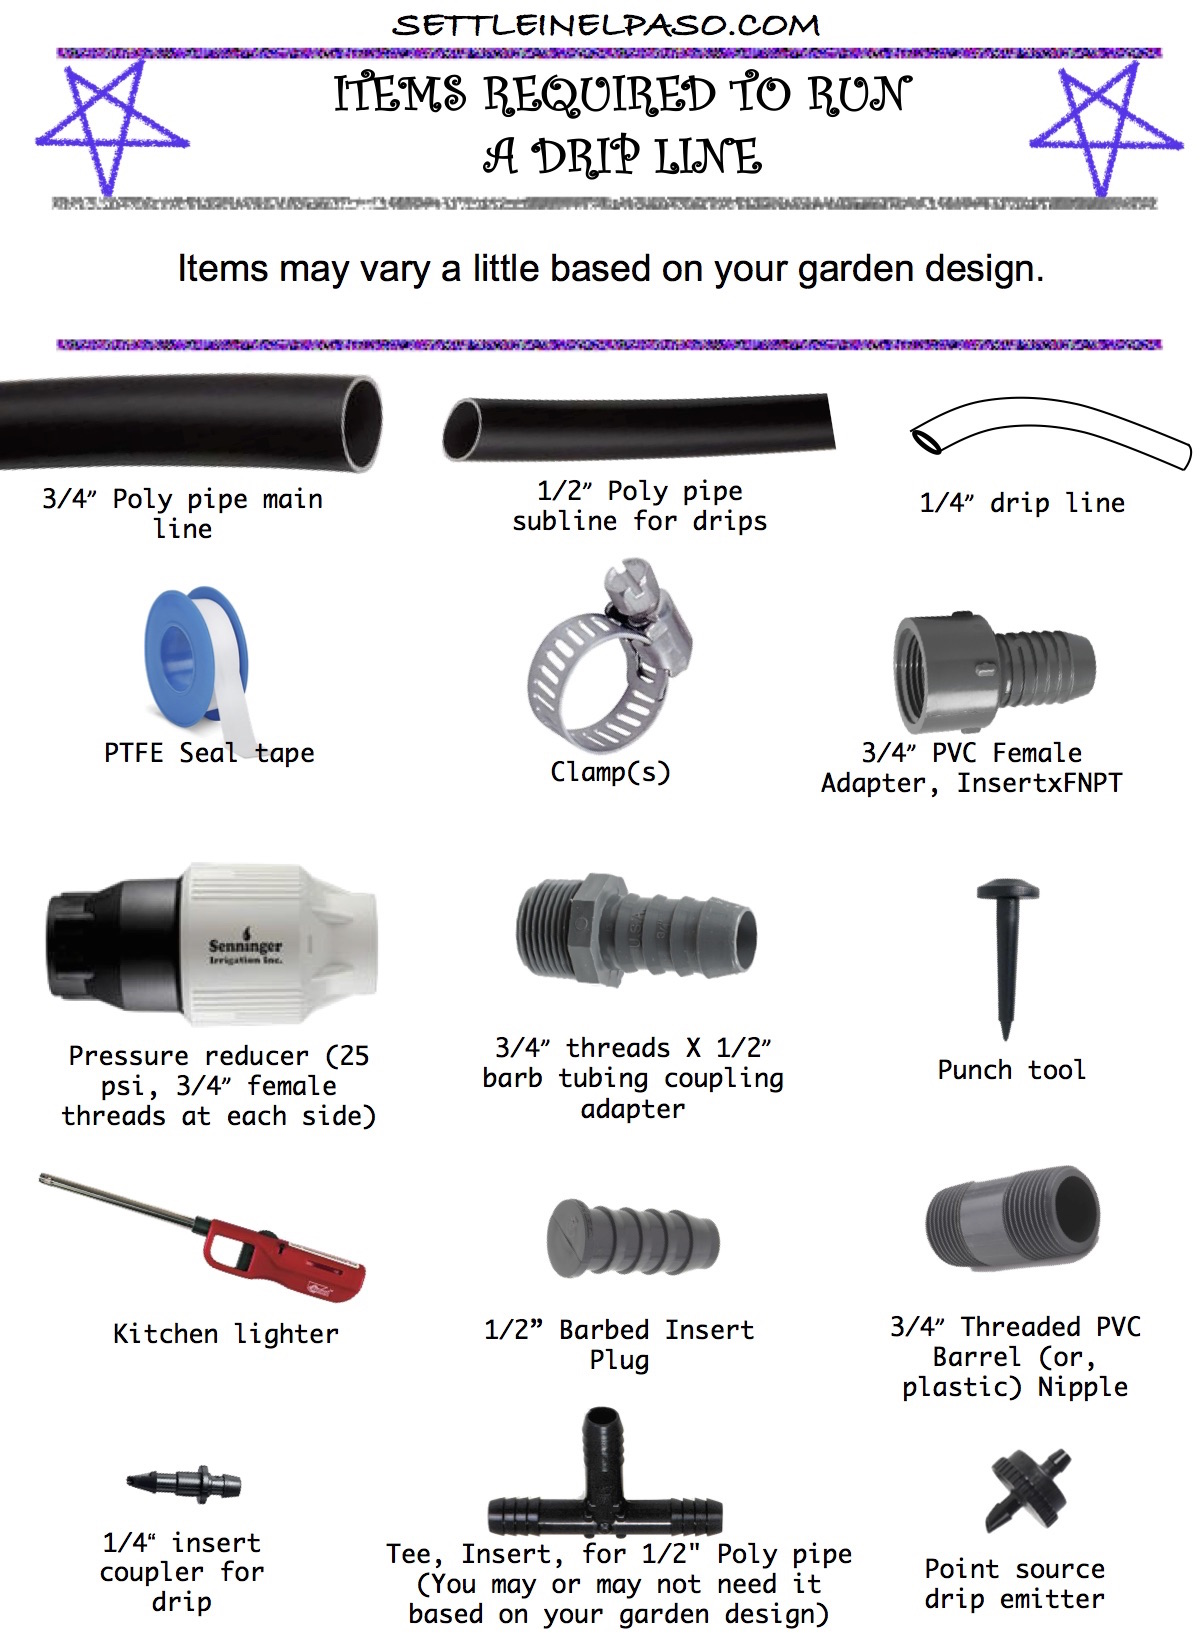 Items required to run a drip irrigation line